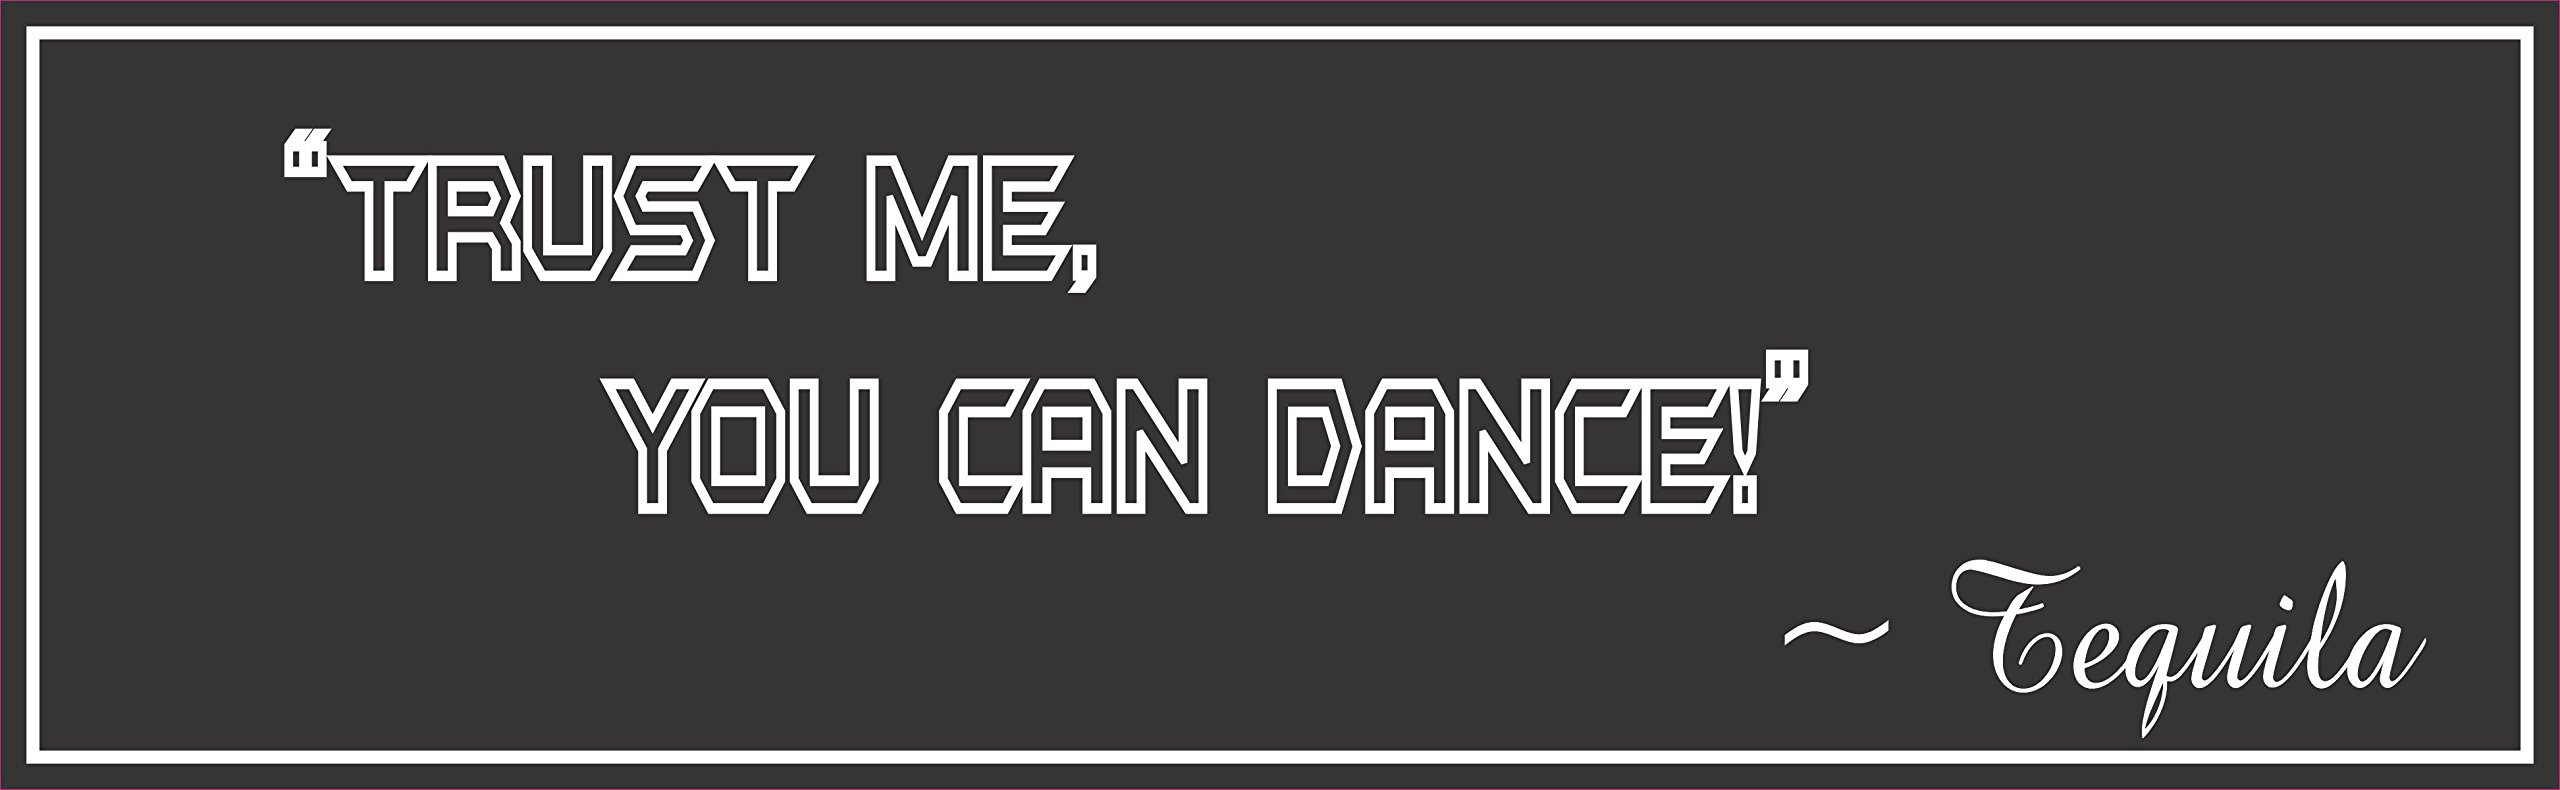 Trust Me You Can Dance Funny Tequila Quote Home Bar Sign by FunSignFactory (Image #1)